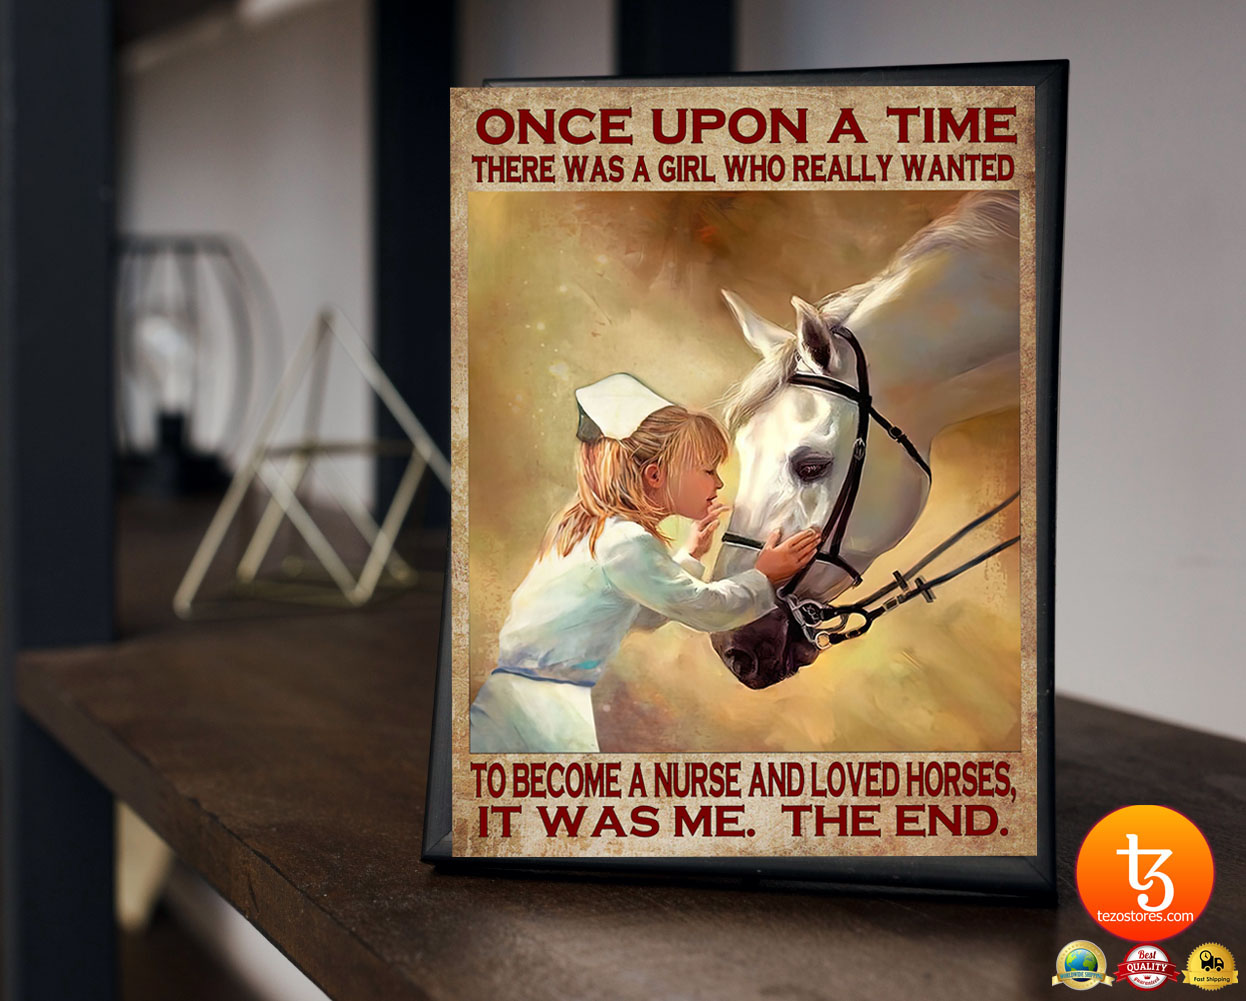 Once upon a time there was a girl who really wanted to become a nurse and loved horses poster 19